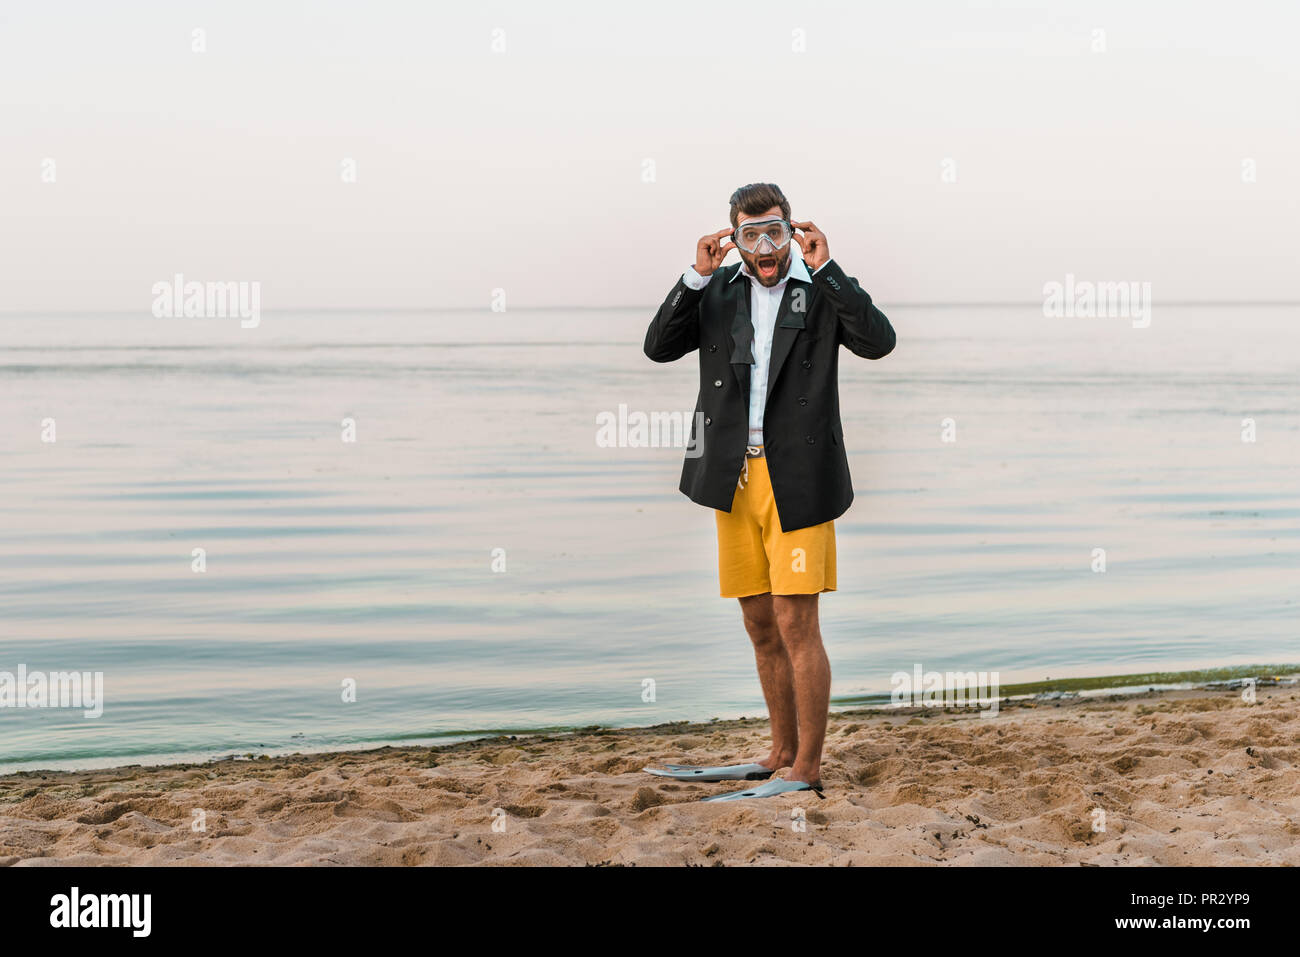 shocked man in black jacket, shorts and flippers wearing swimming mask on beach - Stock Image